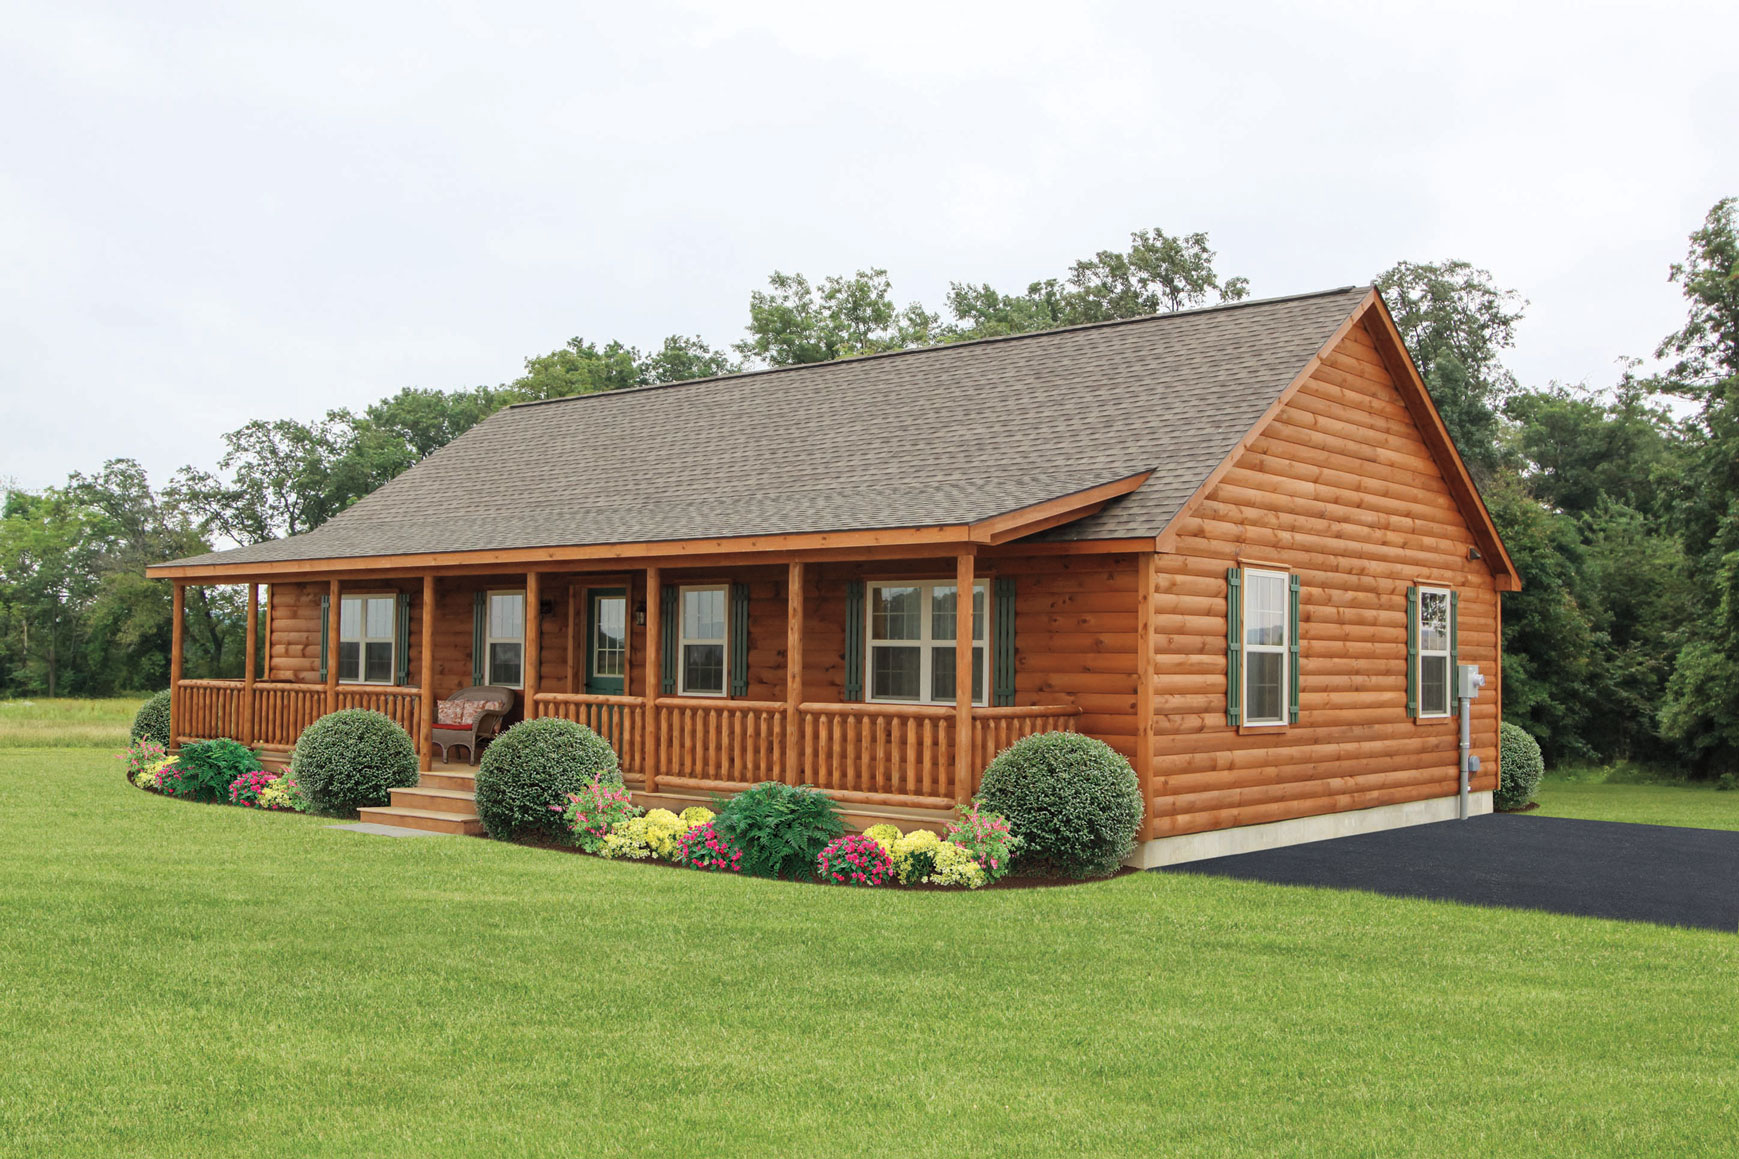 Vacation Home Plans Small Musketeer Log Cabin Wooden Houses For Sale Zook Cabins